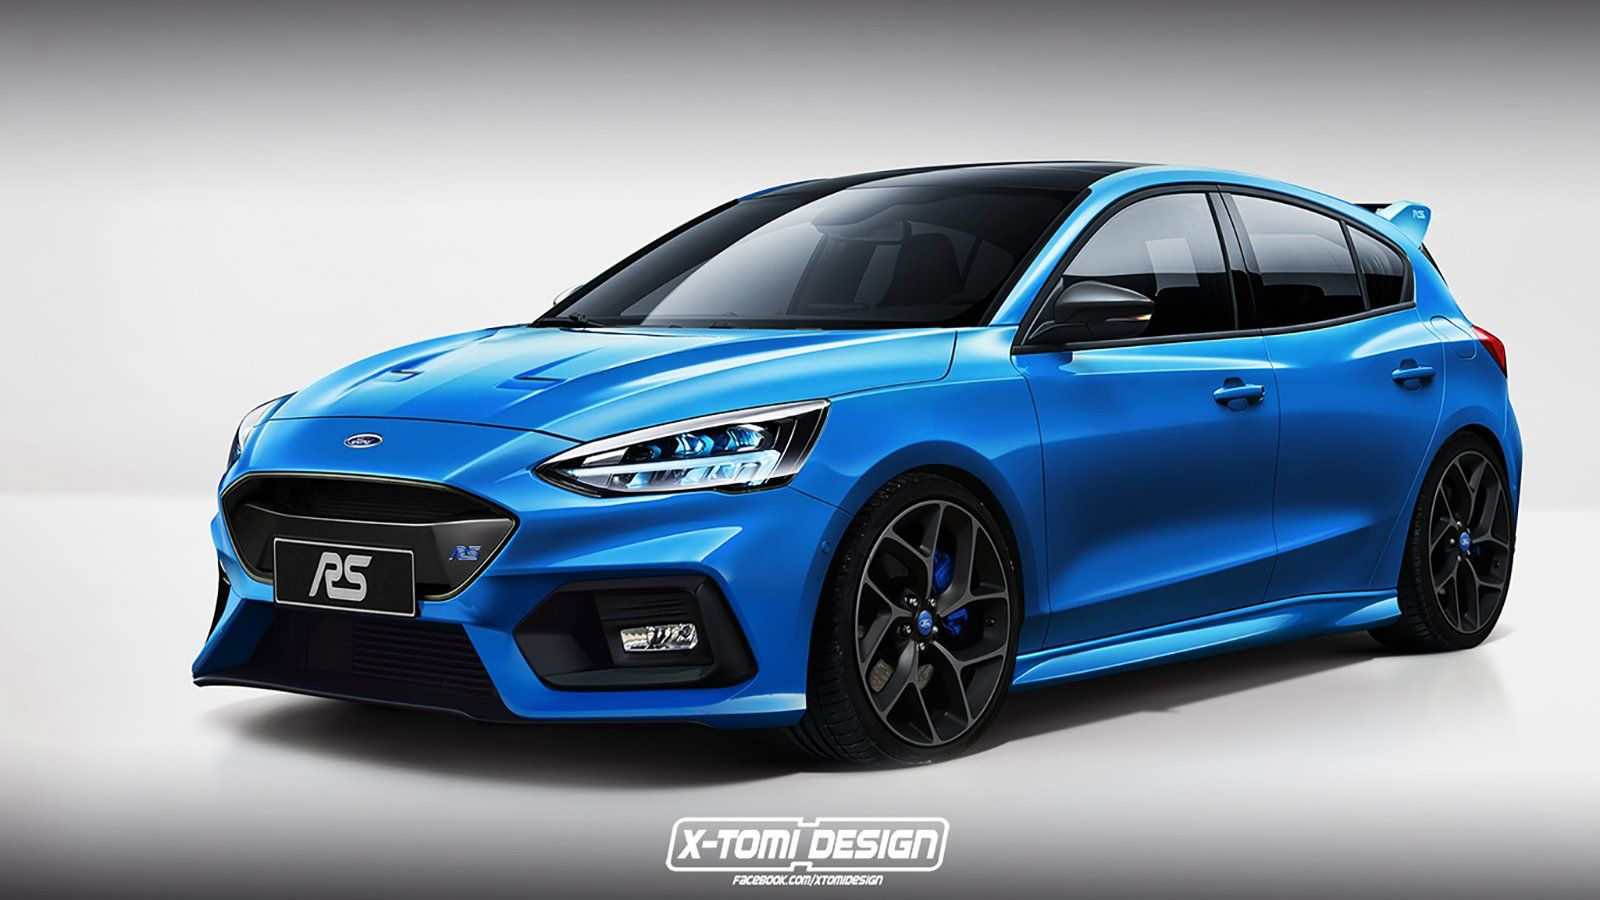 2019 Ford Focus Rs Top Speed Ford Focus Rs New Ford Focus